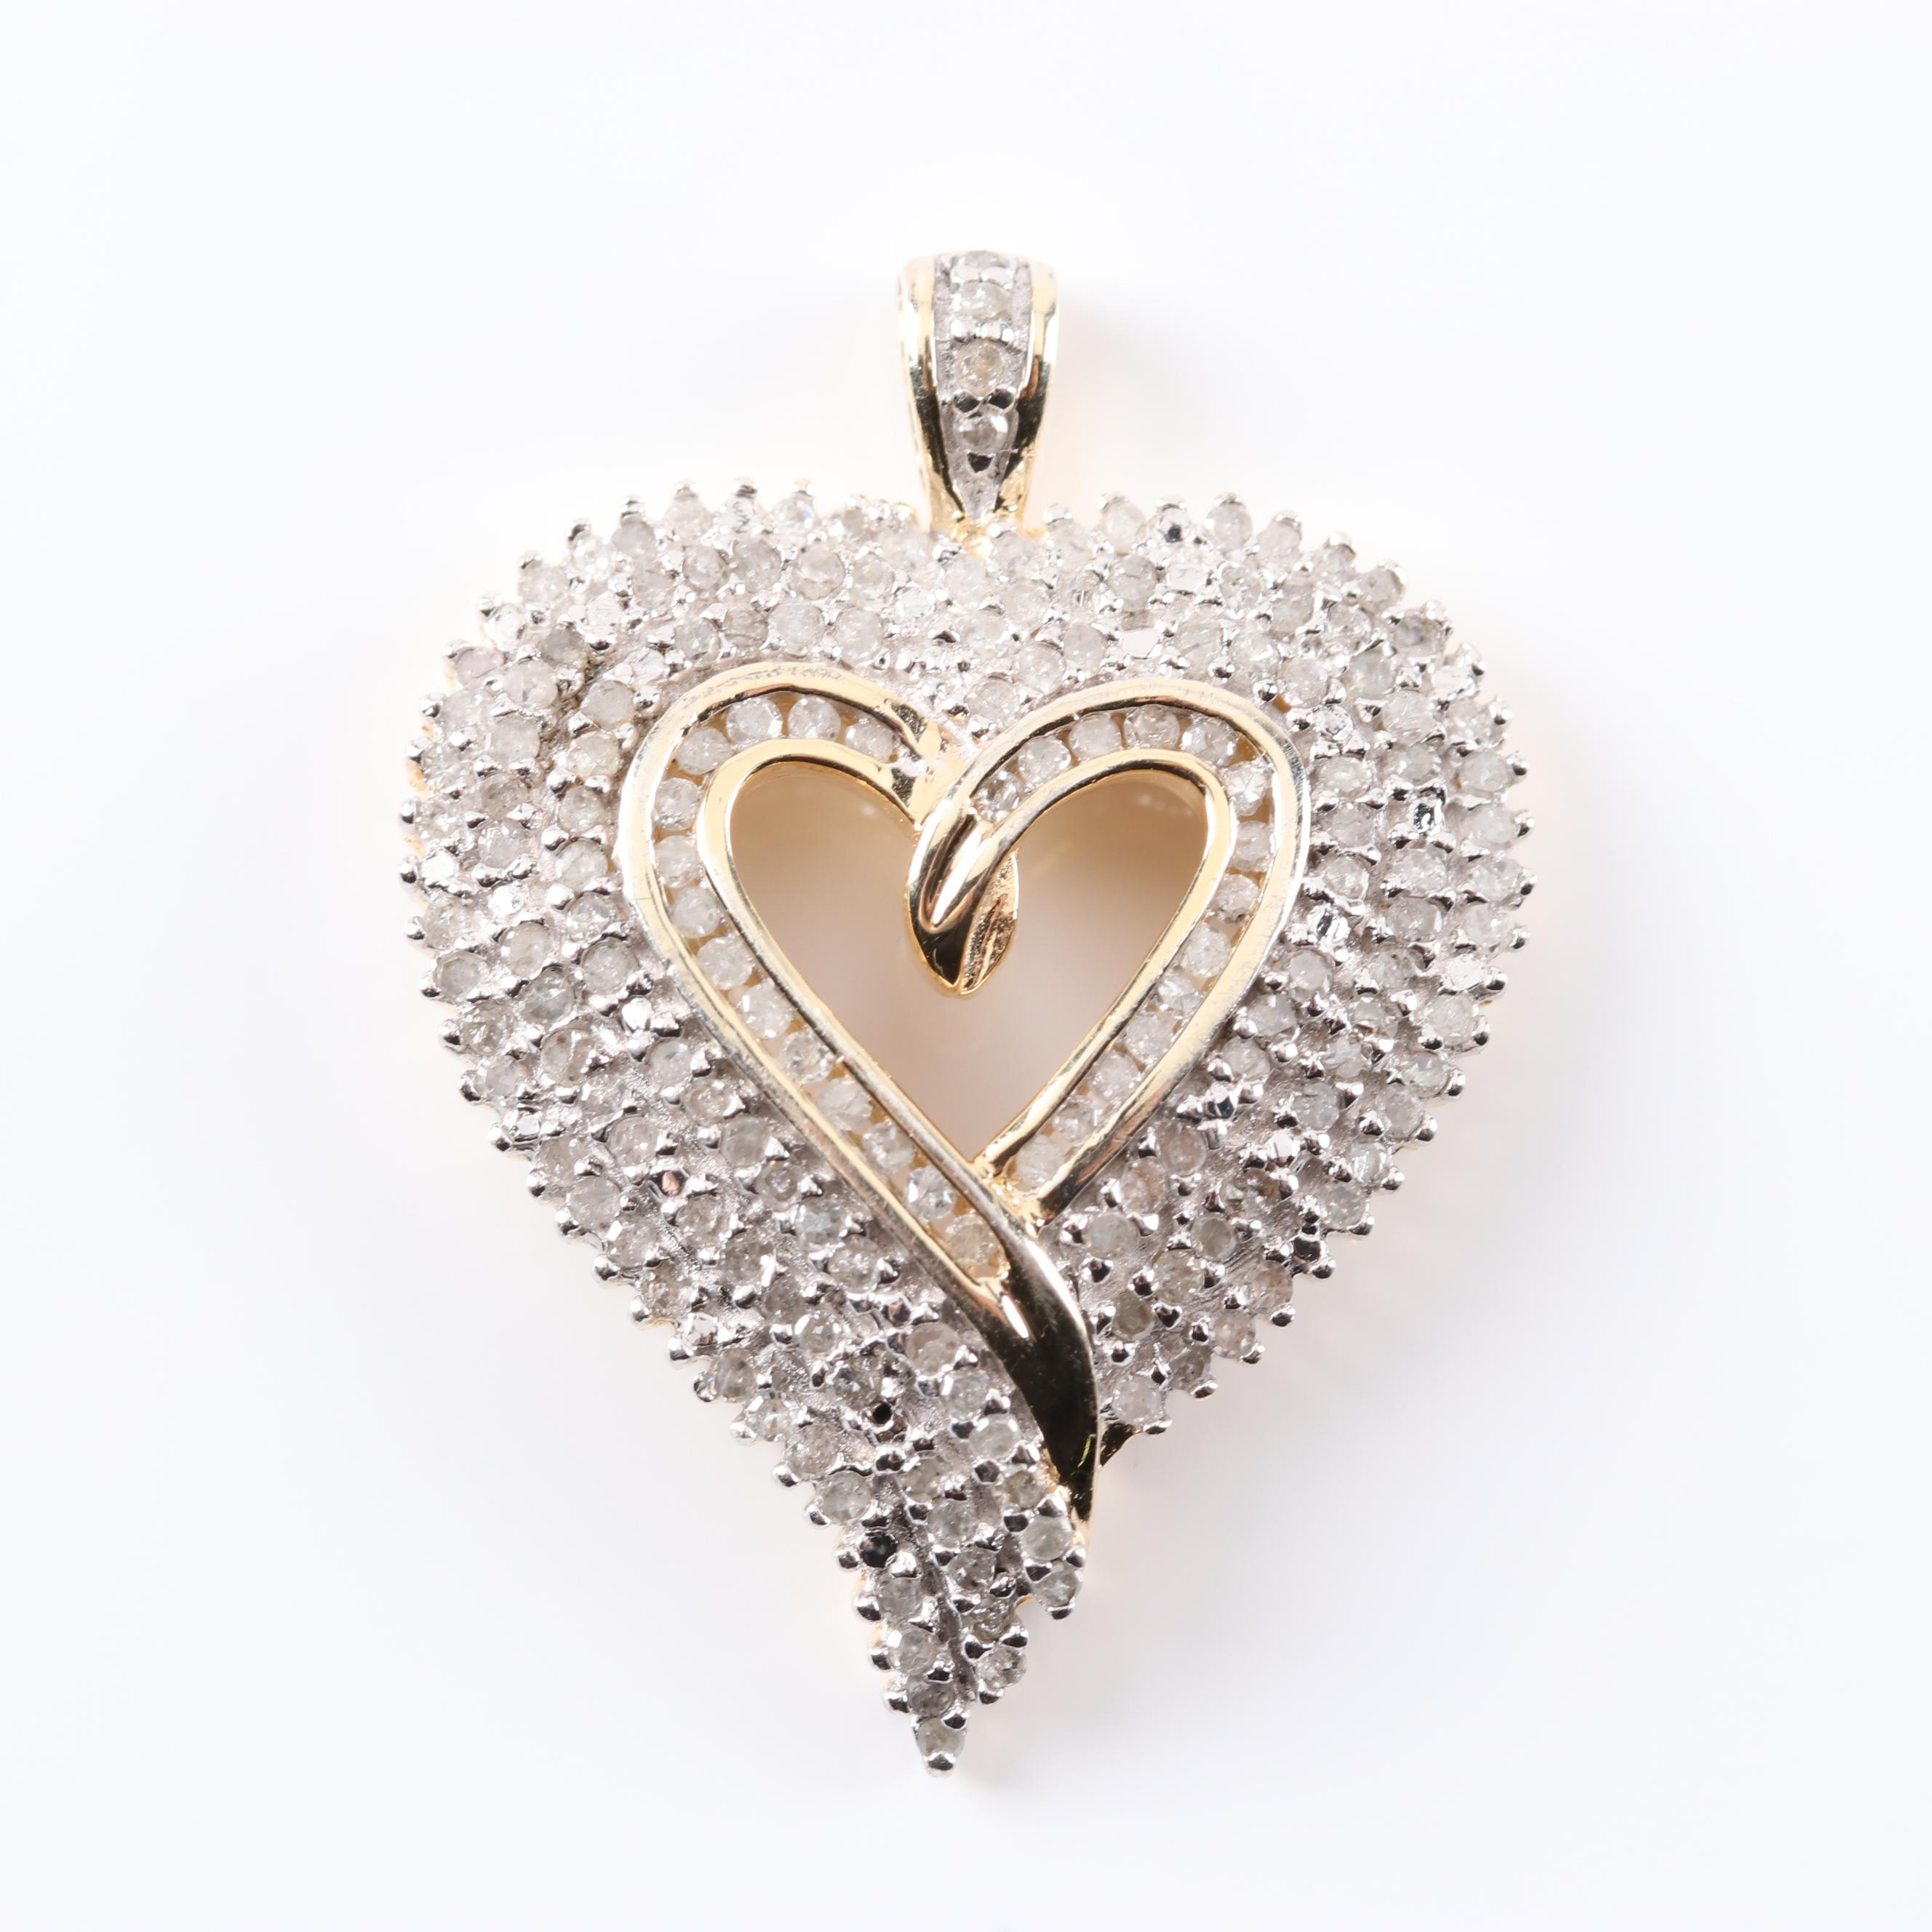 Gold Wash Over Sterling Silver Diamond Heart Pendant